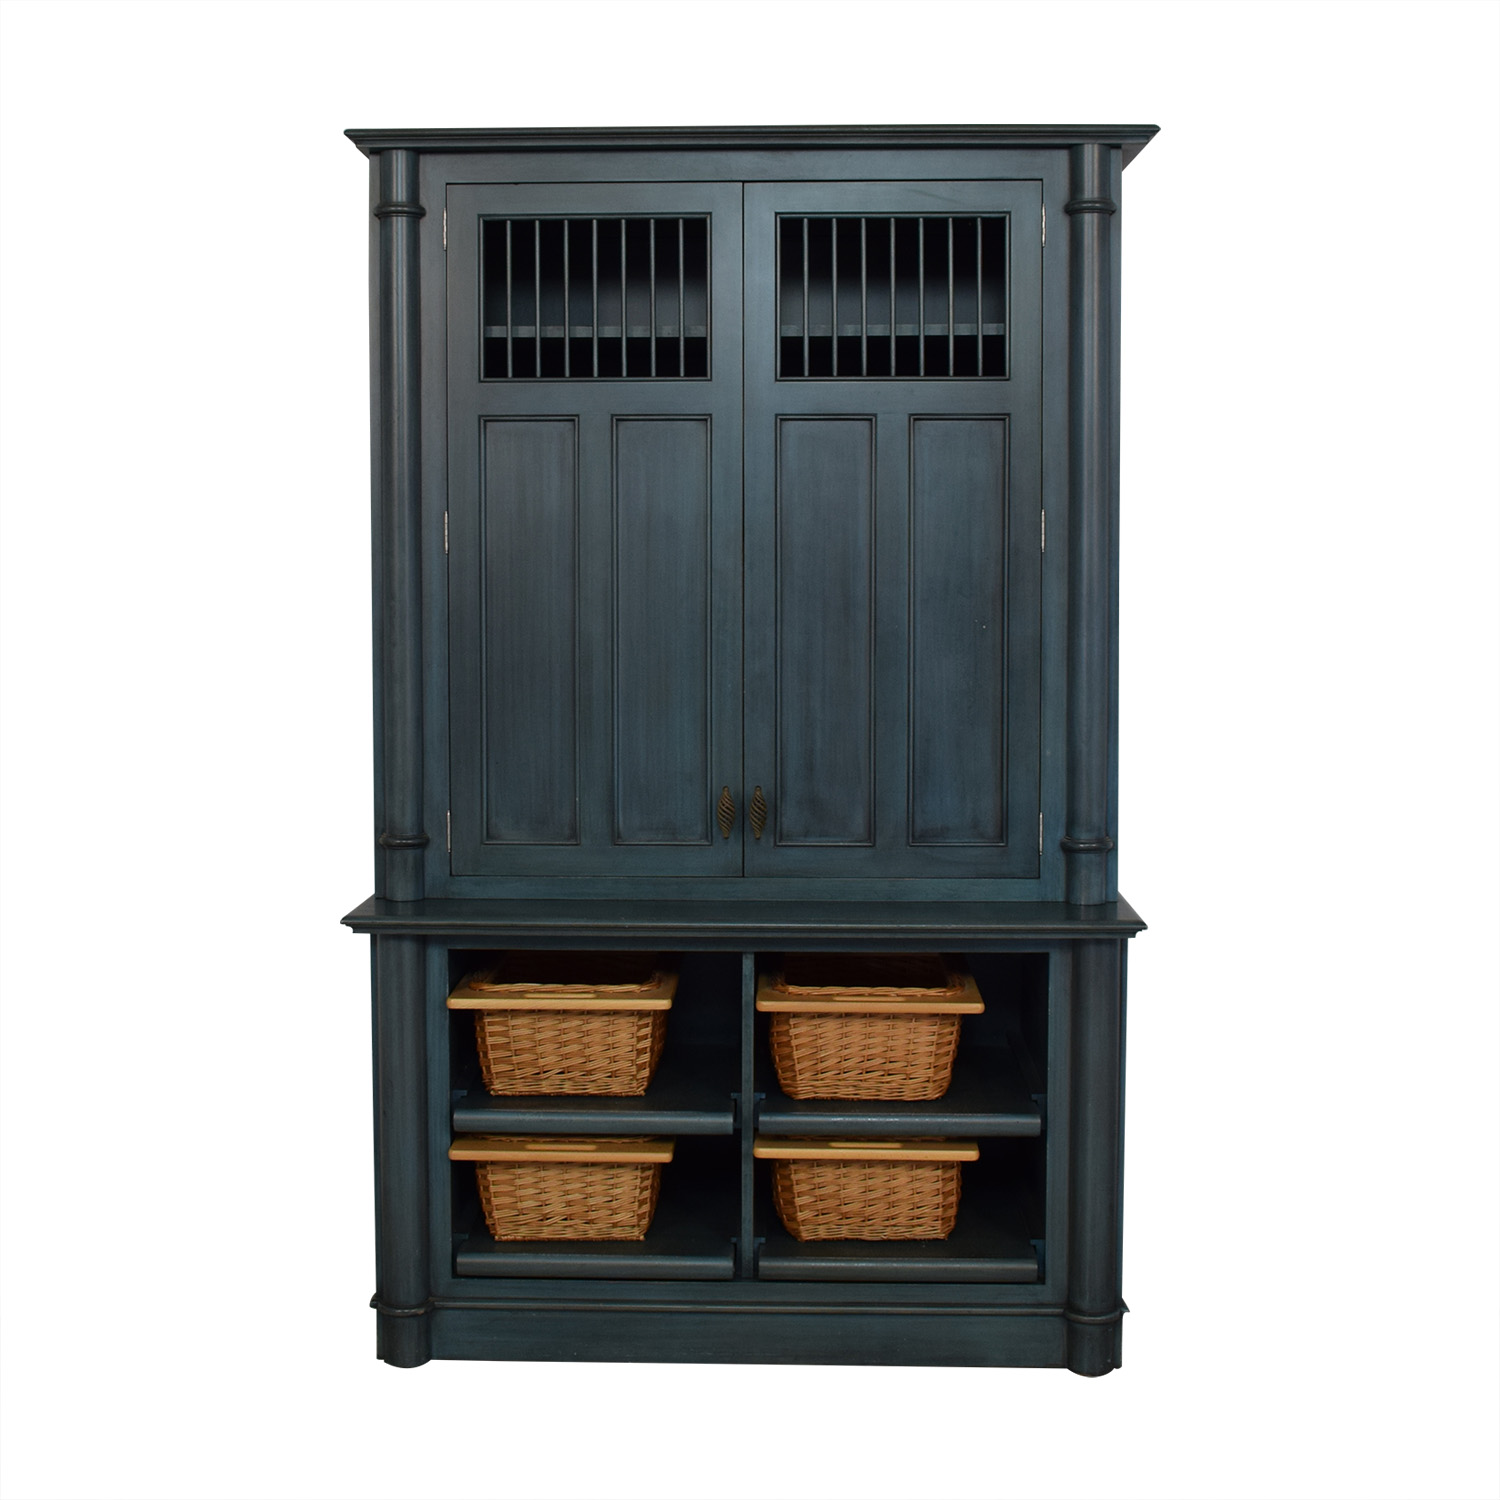 shop Rutt Cabinetry Bilotta Storage Armoire Rutt Cabinetry Wardrobes & Armoires